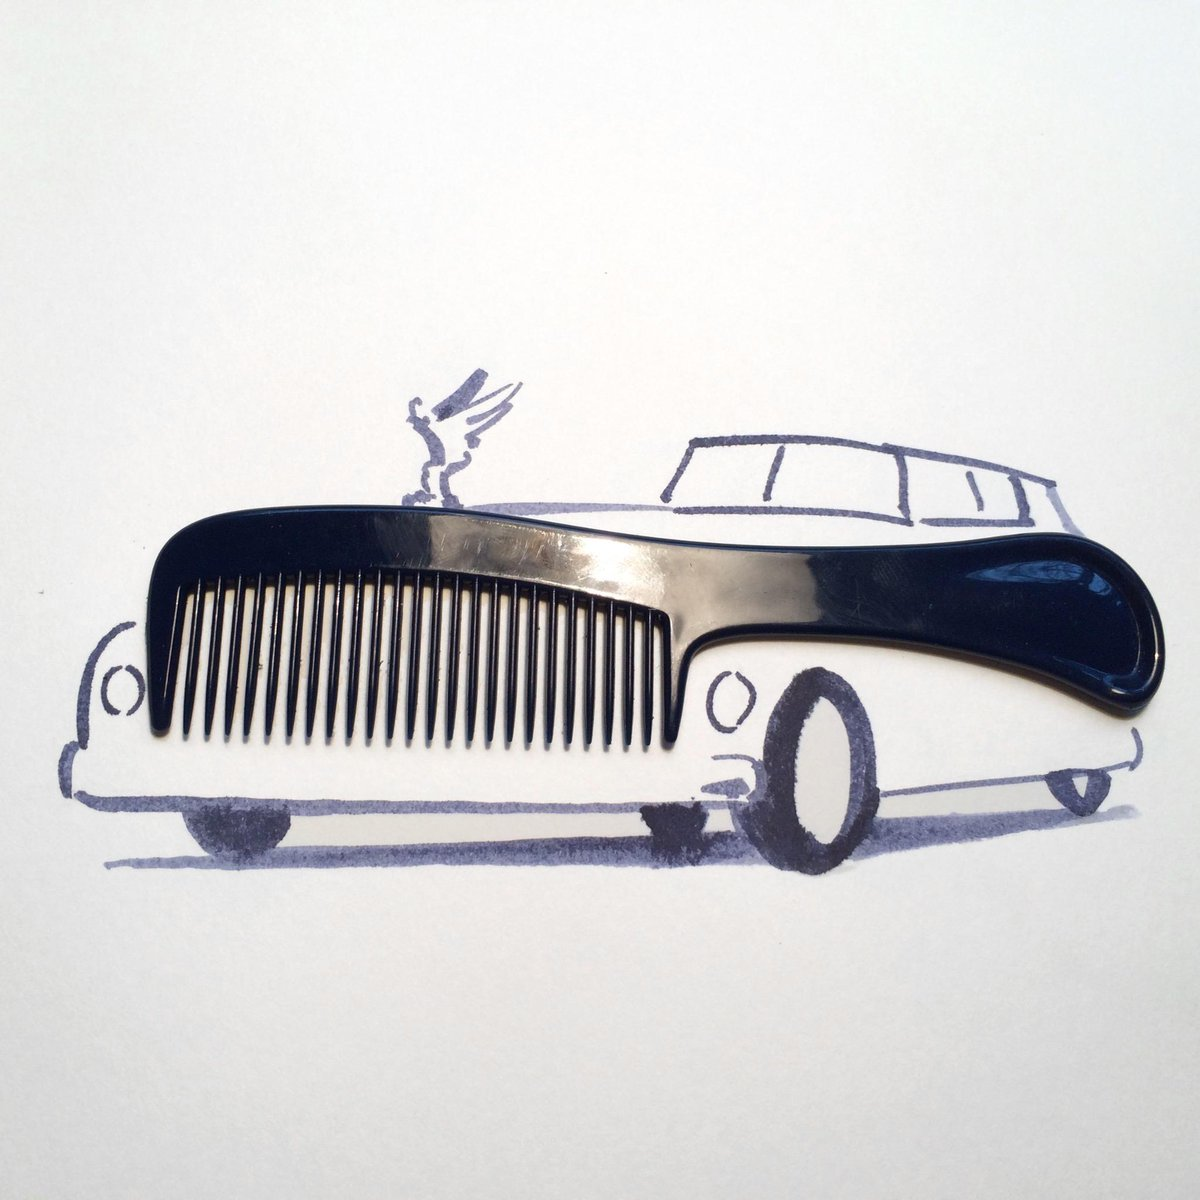 Sunday sketching double header part 1: #car http://t.co/kt76Tdg1Jb http://t.co/W02G3LLGTV